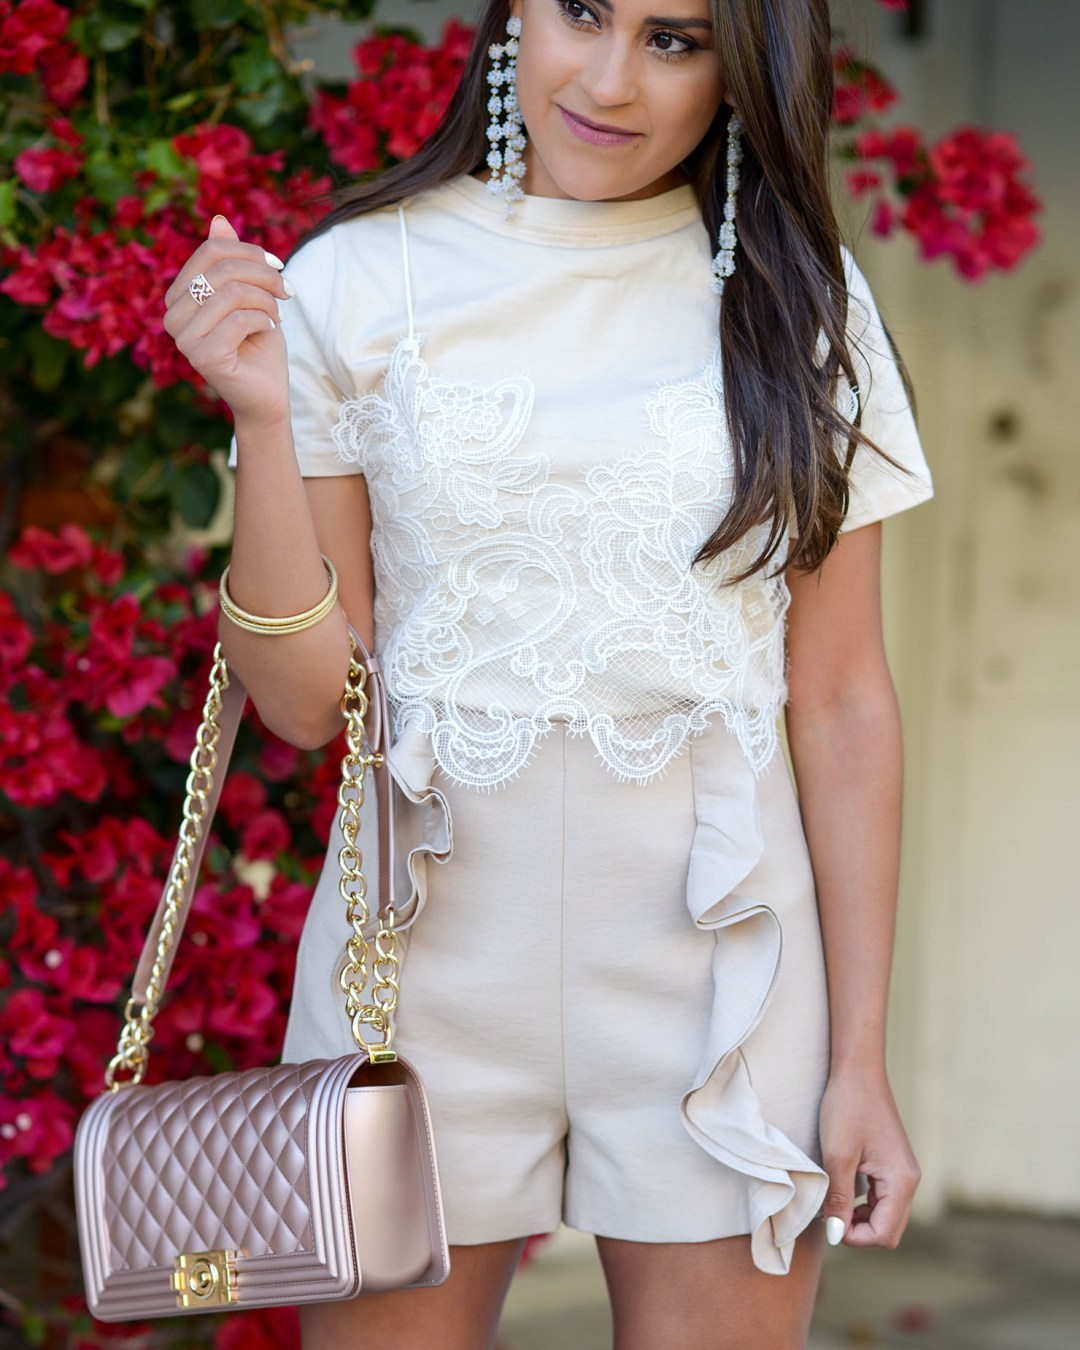 Lifestyle blogger Kelsey Kaplan of Kelsey Kaplan Fashion wearing monochrome outfit and Stuart Weitzman Rosist Sandals